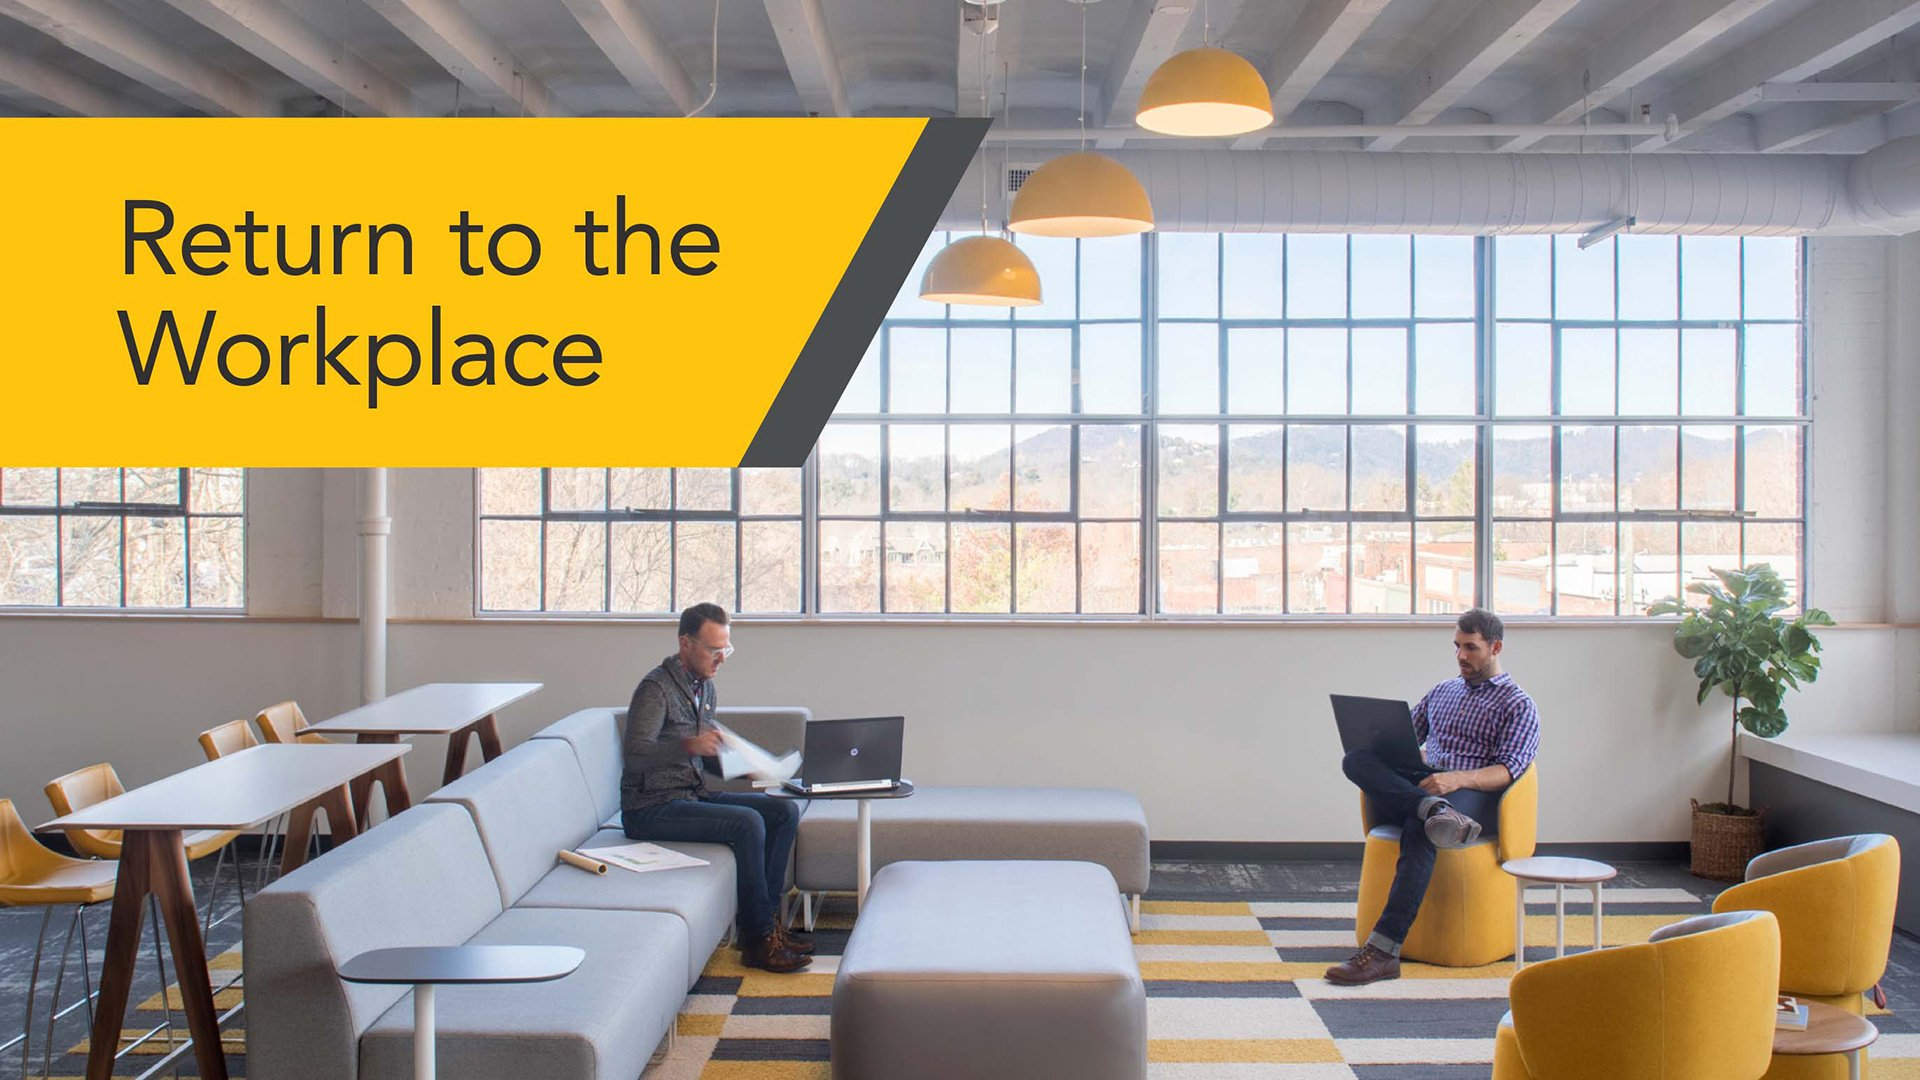 Return To The Workplace: Re-Occupancy Design Considerations During COVID-19